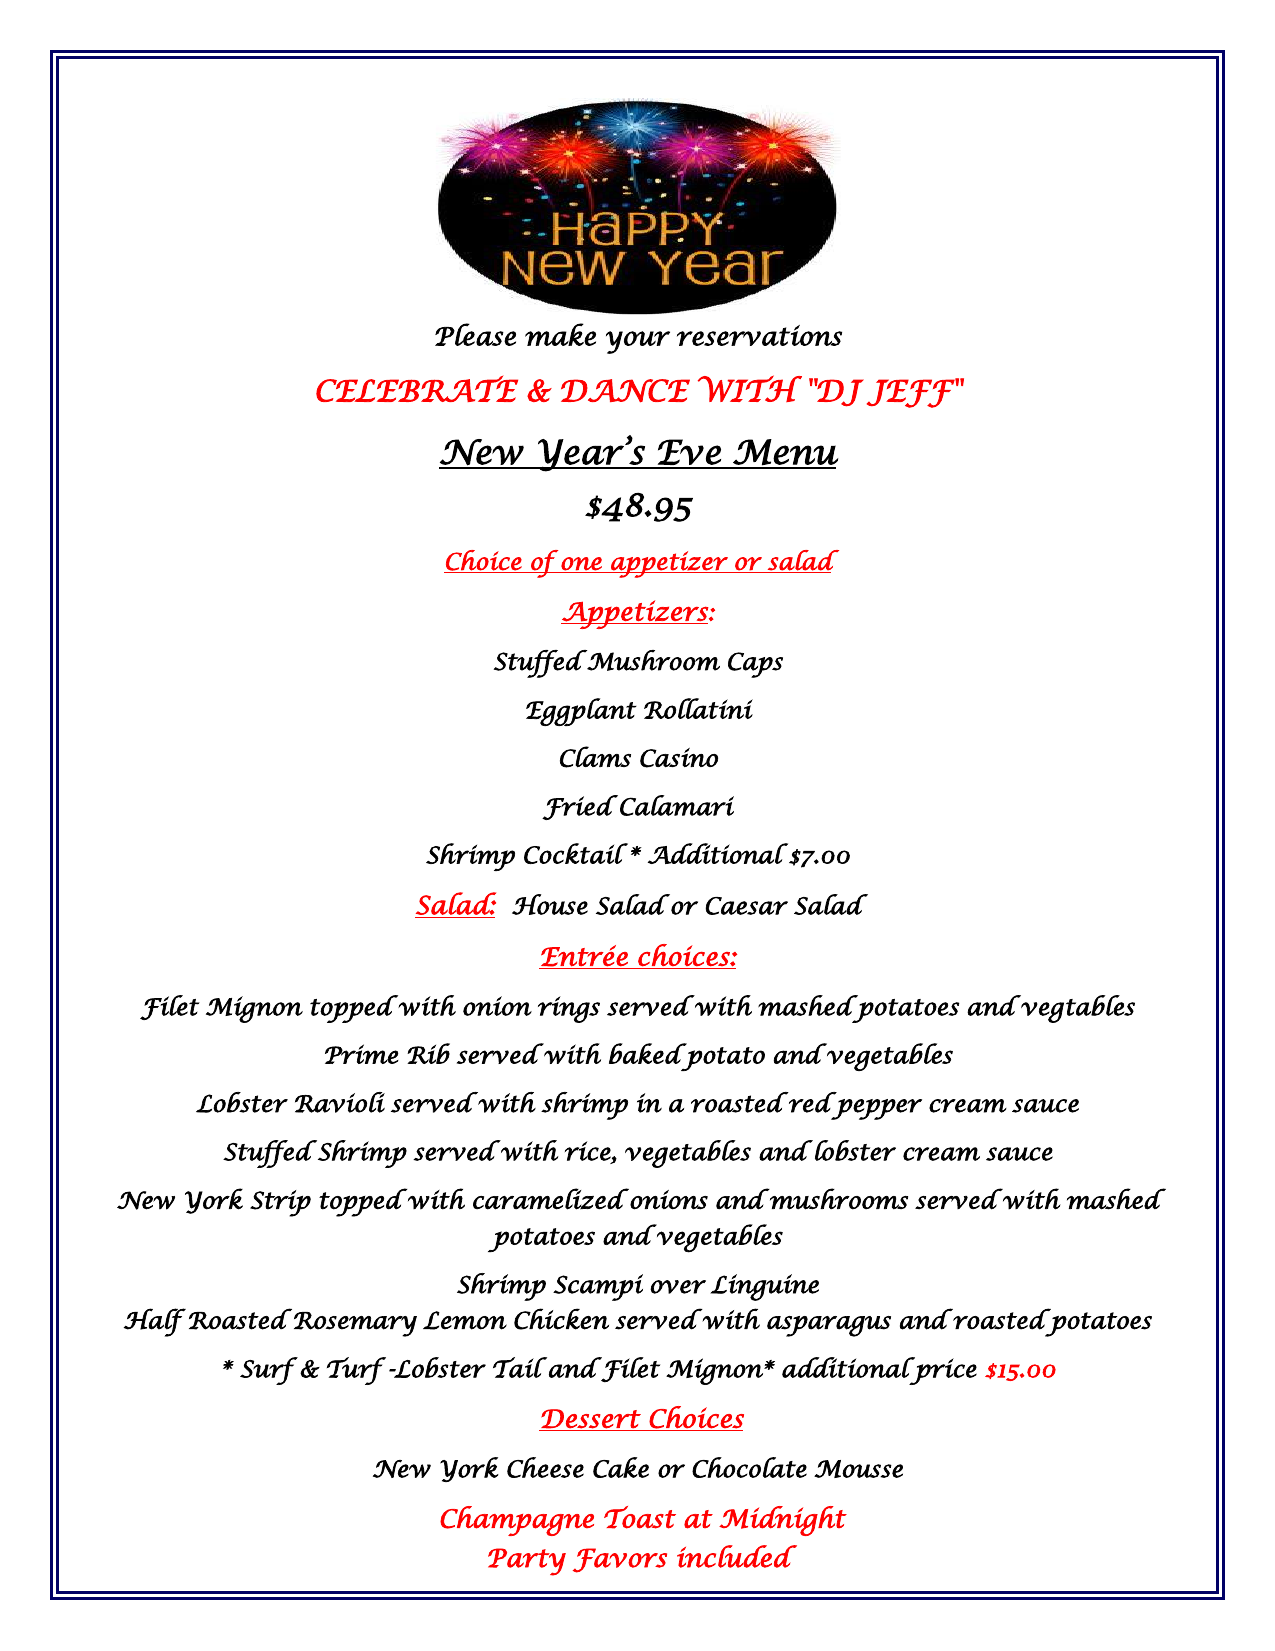 """Please make your reservations CELEBRATE & DANCE WITH """"DJ JEFF"""" New Year's Eve Menu $48.95 Choice of one appetizer or salad Appetizers: Stuffed Mushroom Caps Eggplant Rollatini Clams Casino Fried Calamari Shrimp Cocktail * Additional $7.00 Salad: House Salad or Caesar Salad Entrée choices: Filet Mignon topped with onion rings served with mashed potatoes and vegtables Prime Rib served with baked potato and vegetables Lobster Ravioli served with shrimp in a roasted red pepper cream sauce Stuffed Shrimp served with rice, vegetables and lobster cream sauce New York Strip topped with caramelized onions and mushrooms served with mashed potatoes and vegetables Shrimp Scampi over Linguine Half Roasted Rosemary Lemon Chicken served with asparagus and roasted potatoes * Surf & Turf -Lobster Tail and Filet Mignon* additional price $15.00  Dessert Choices New York Cheese Cake or Chocolate Mousse  Champagne Toast at Midnight Party Favors included"""